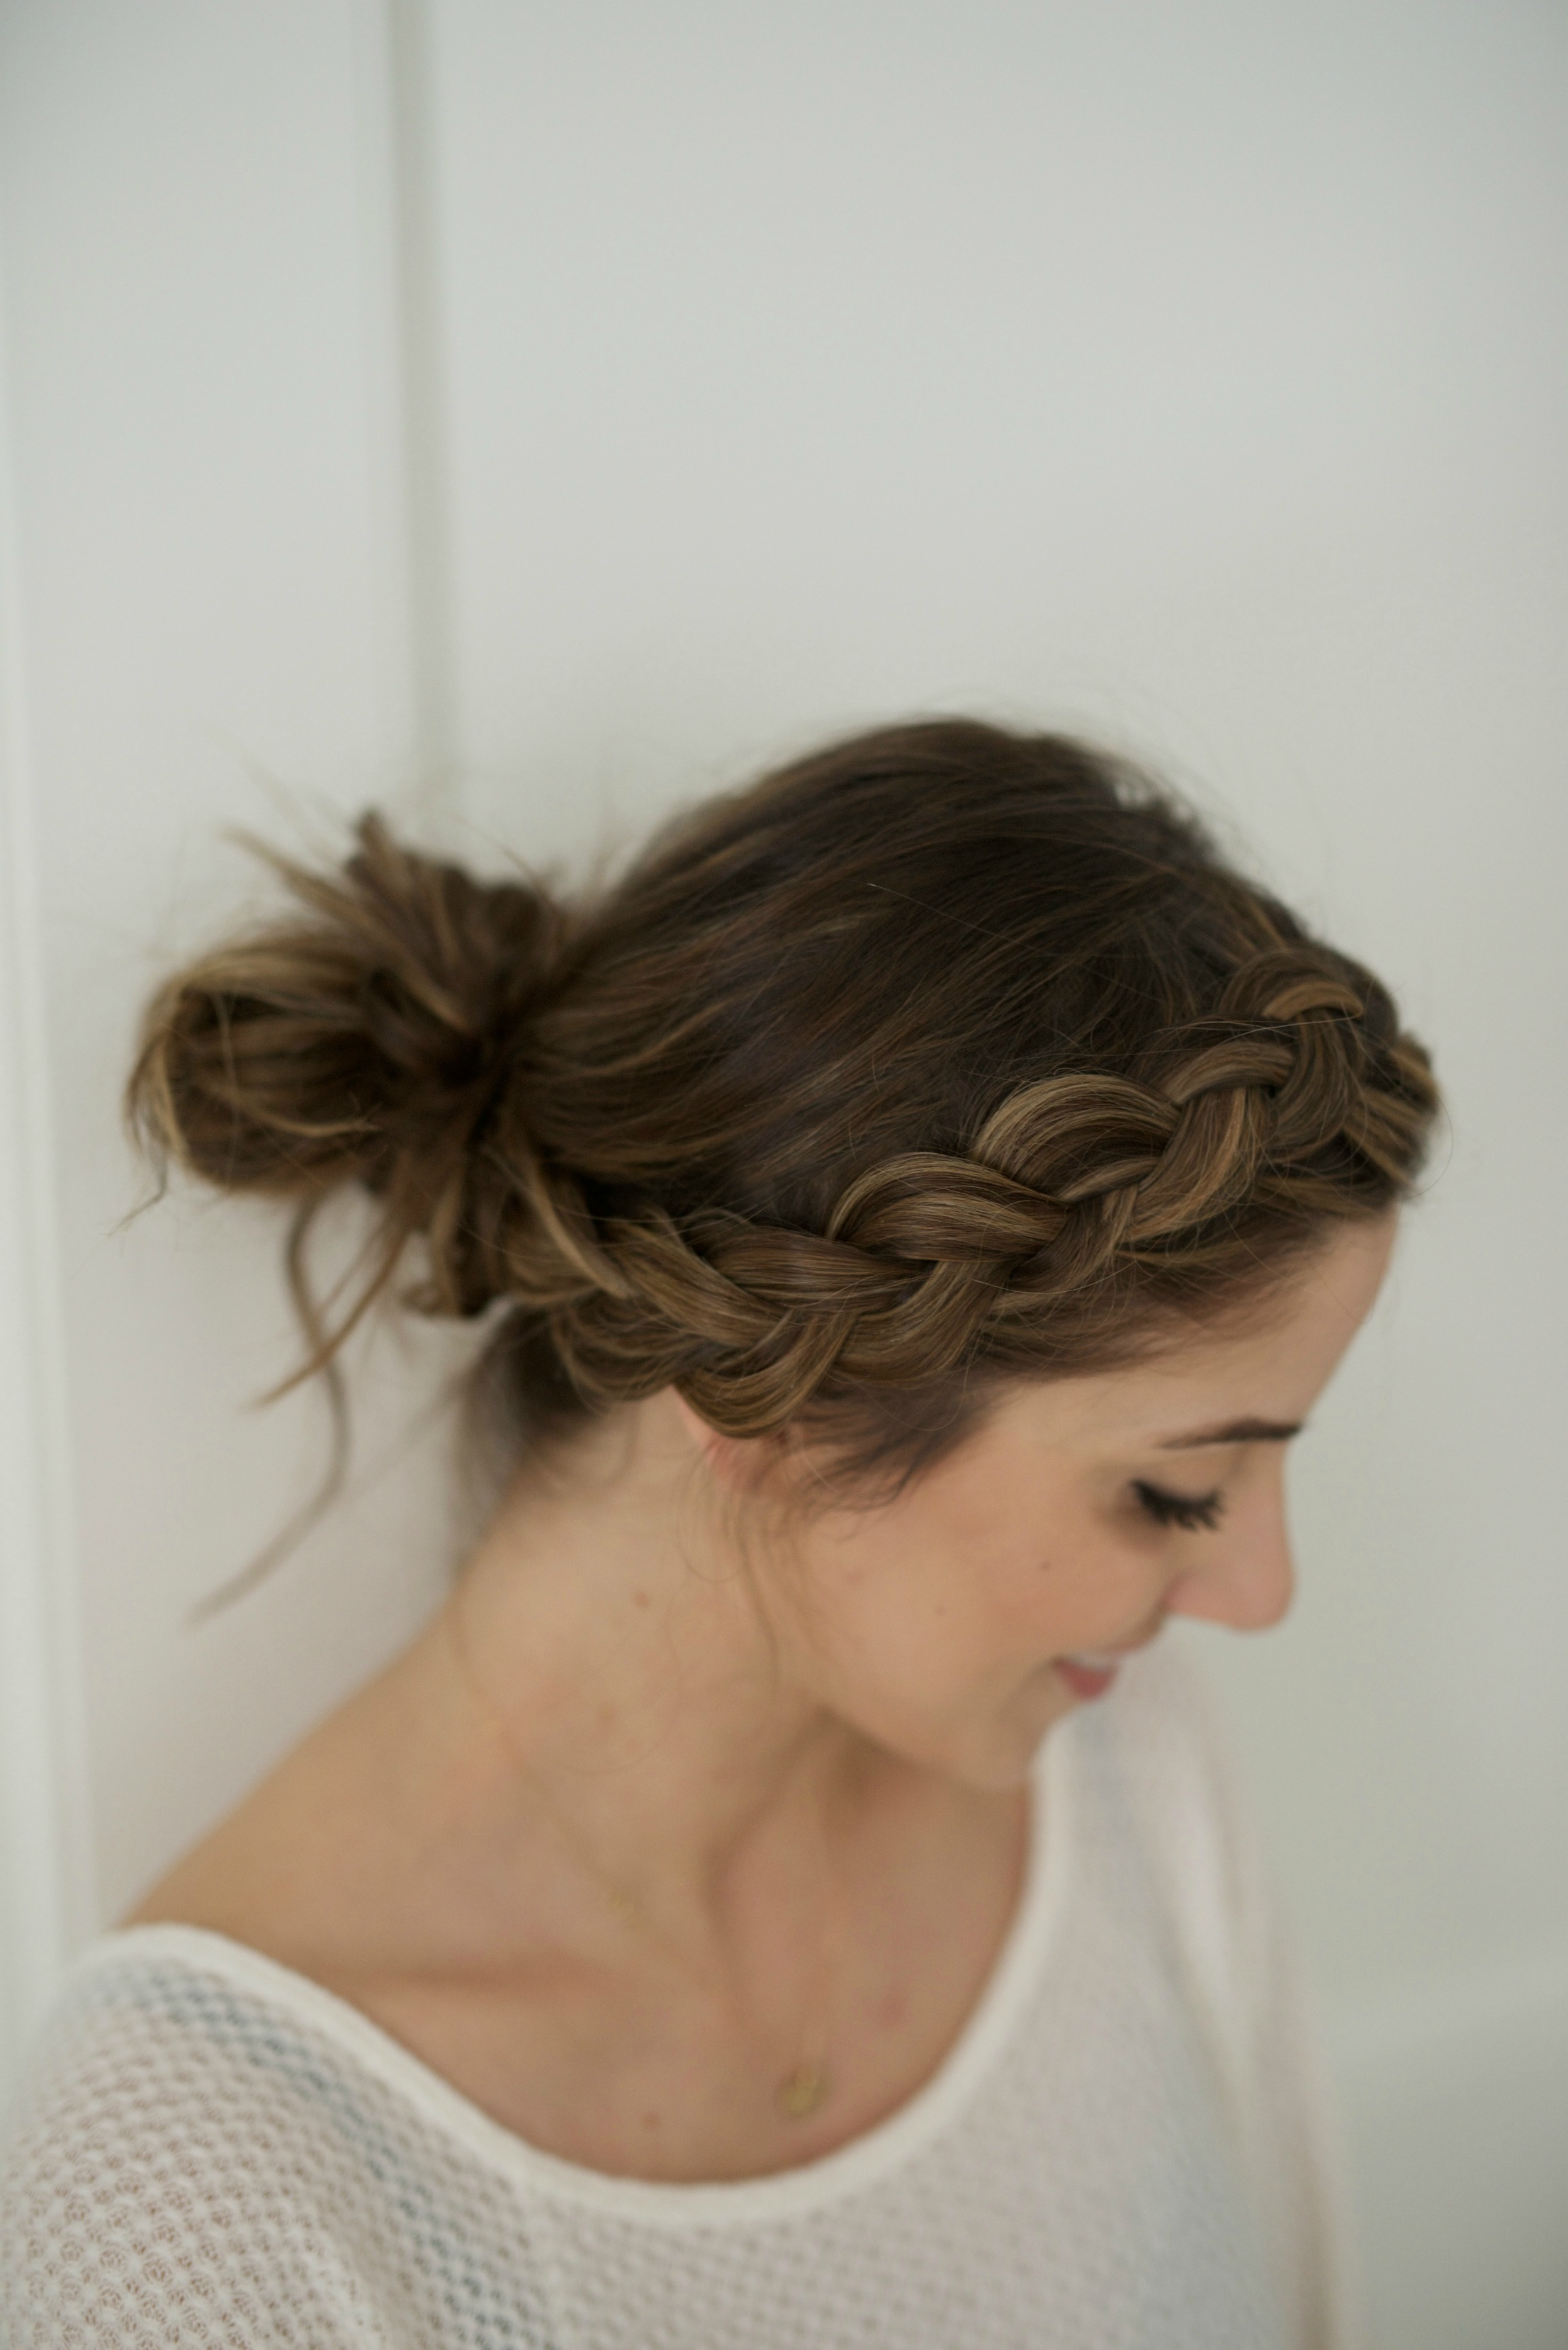 Messy Braided Bun Tutorial featuring Dove Refresh + Care Dry Shampoo, perfect for busy moms!